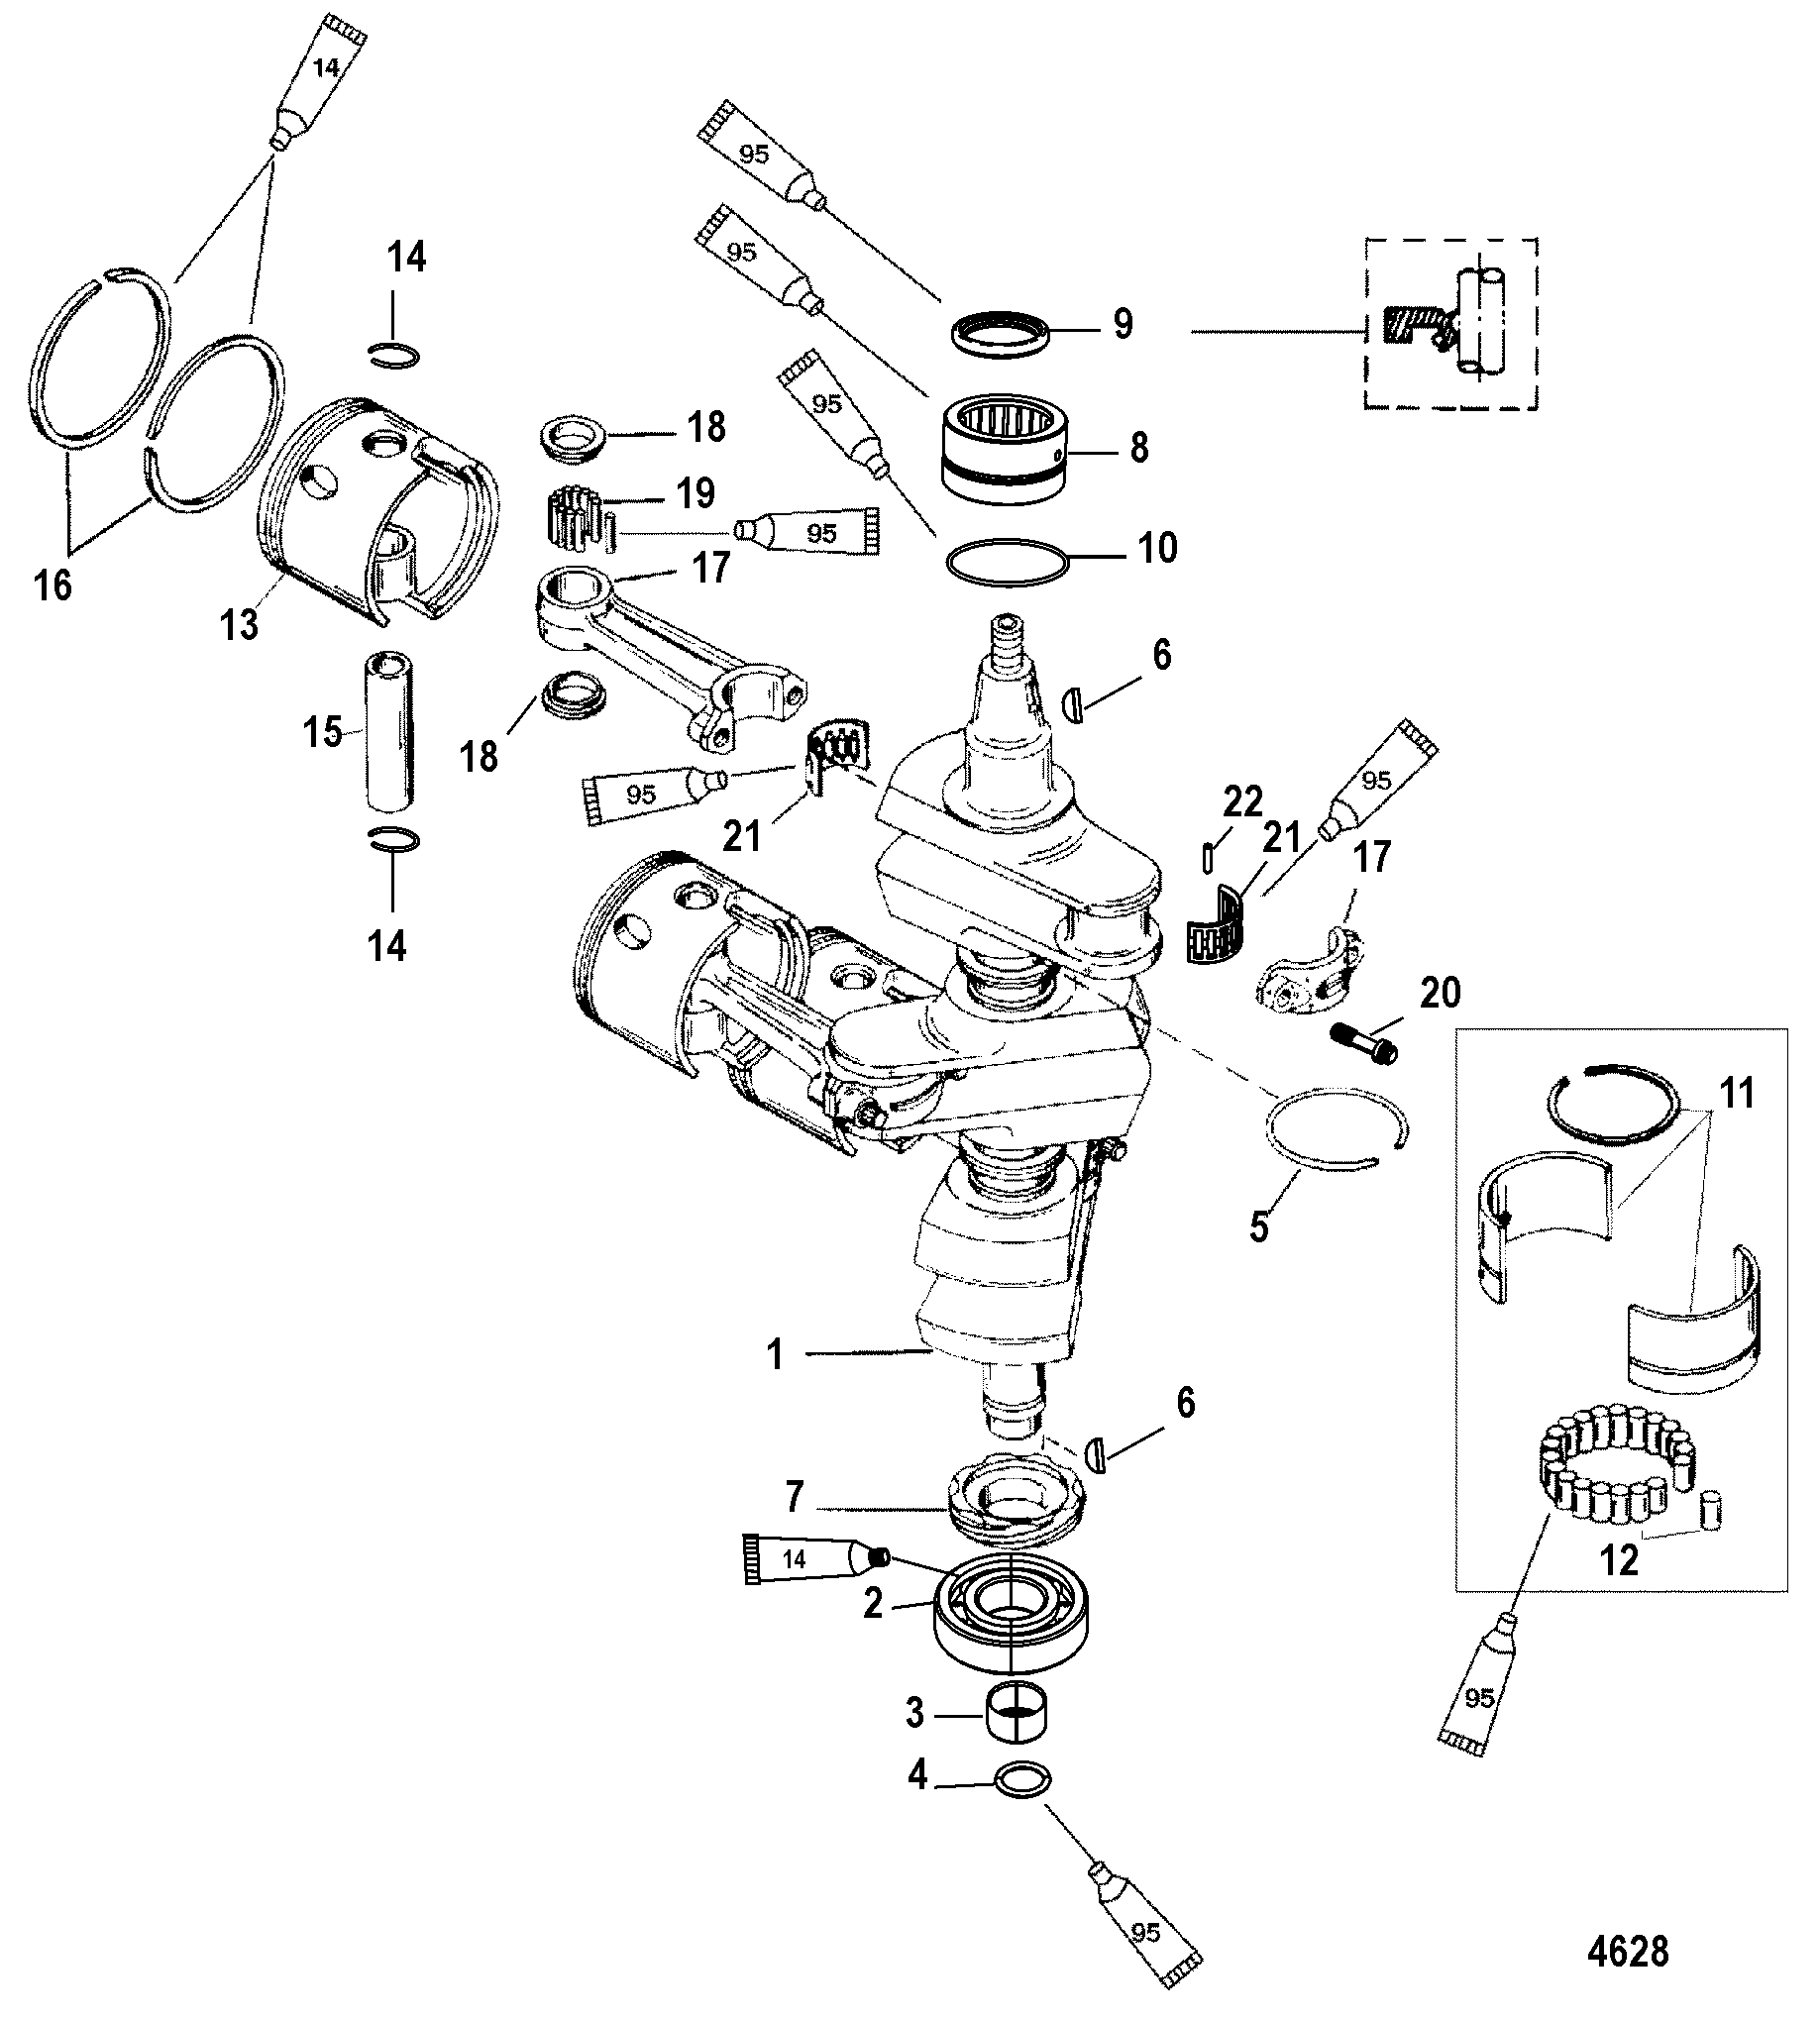 Crankshaft, Pistons and Connecting Rods FOR MARINER